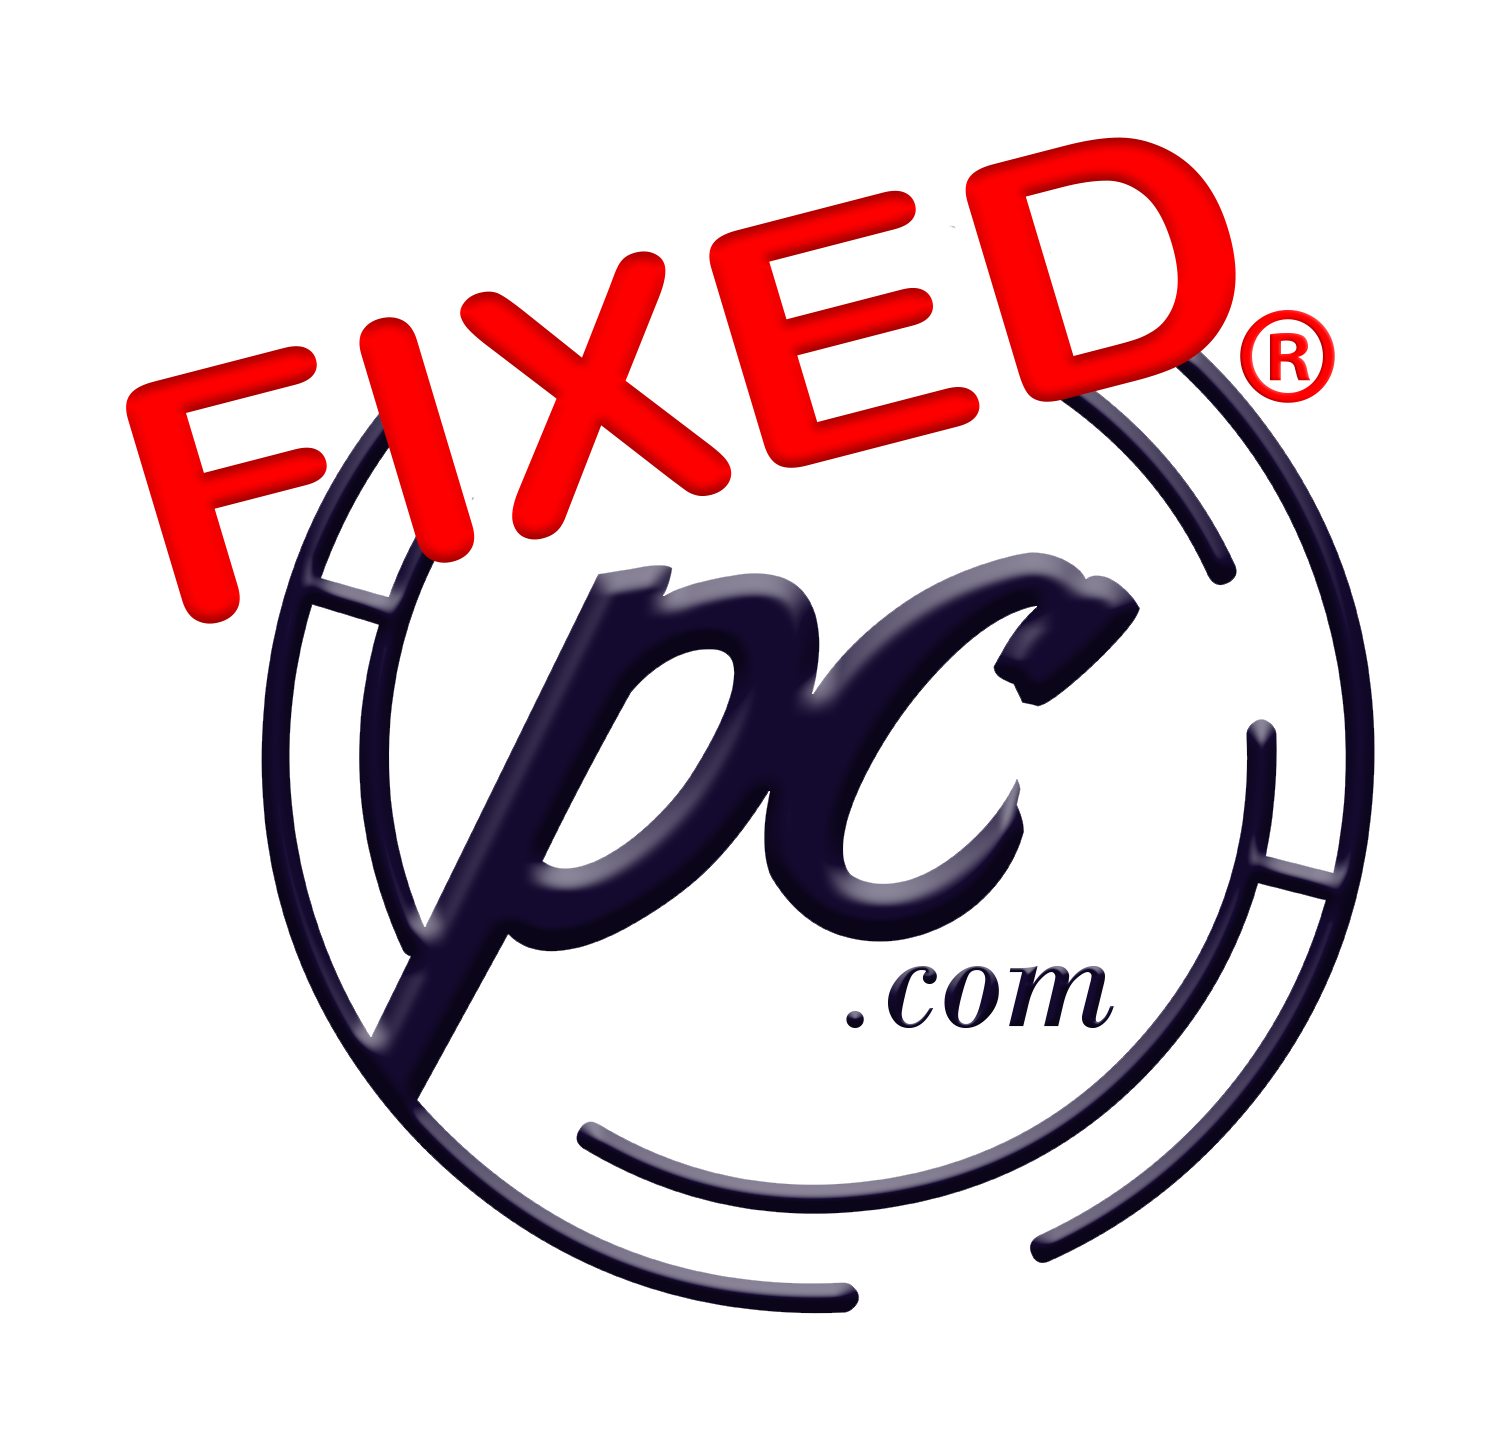 Fixed PC, LLC